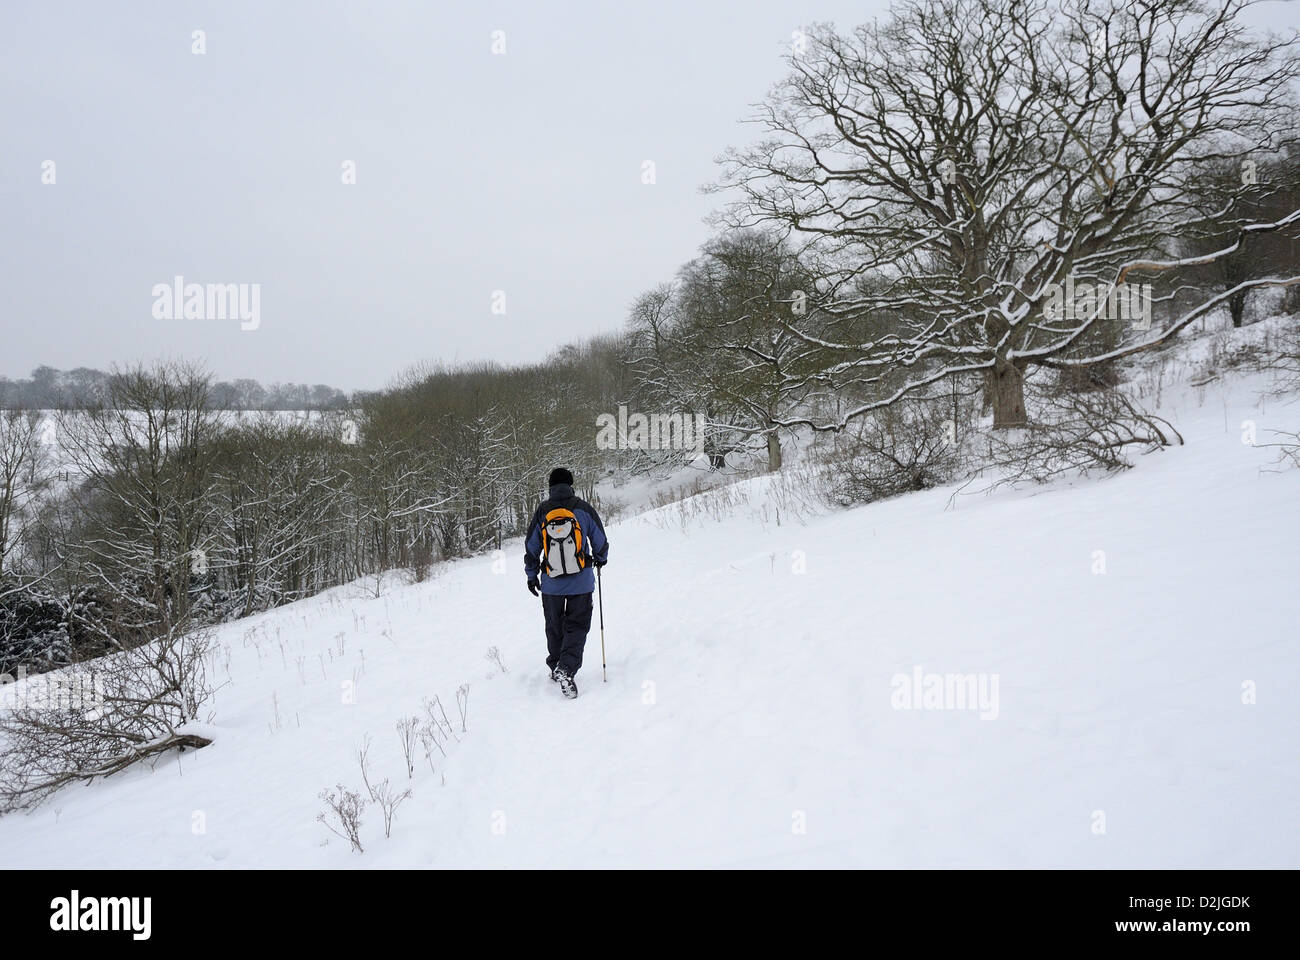 Walking the Ridgeway in Winter Snow - Stock Image